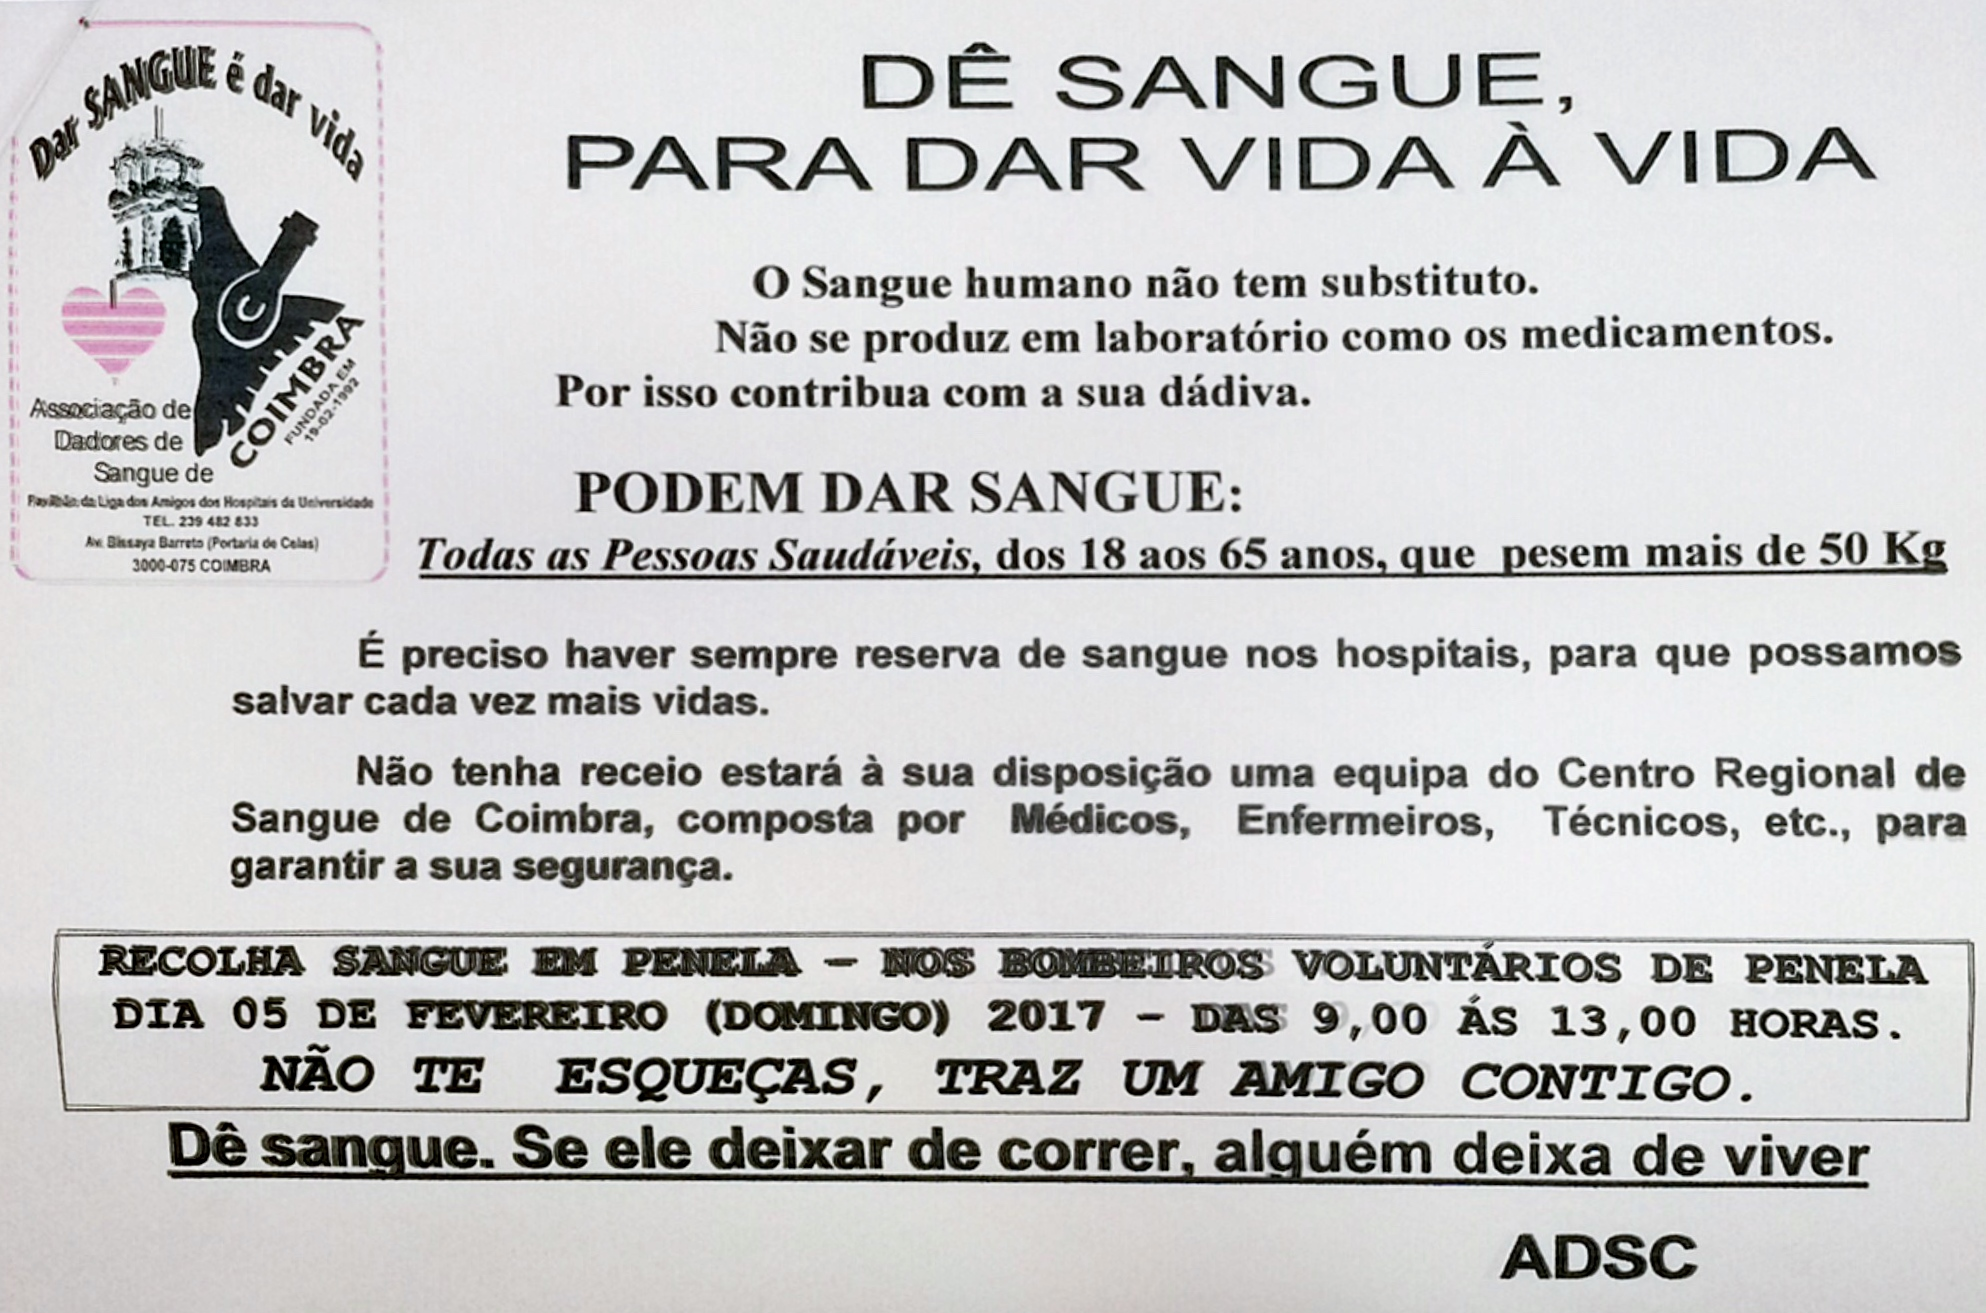 images/stories/recolha_sangue_2017.jpg